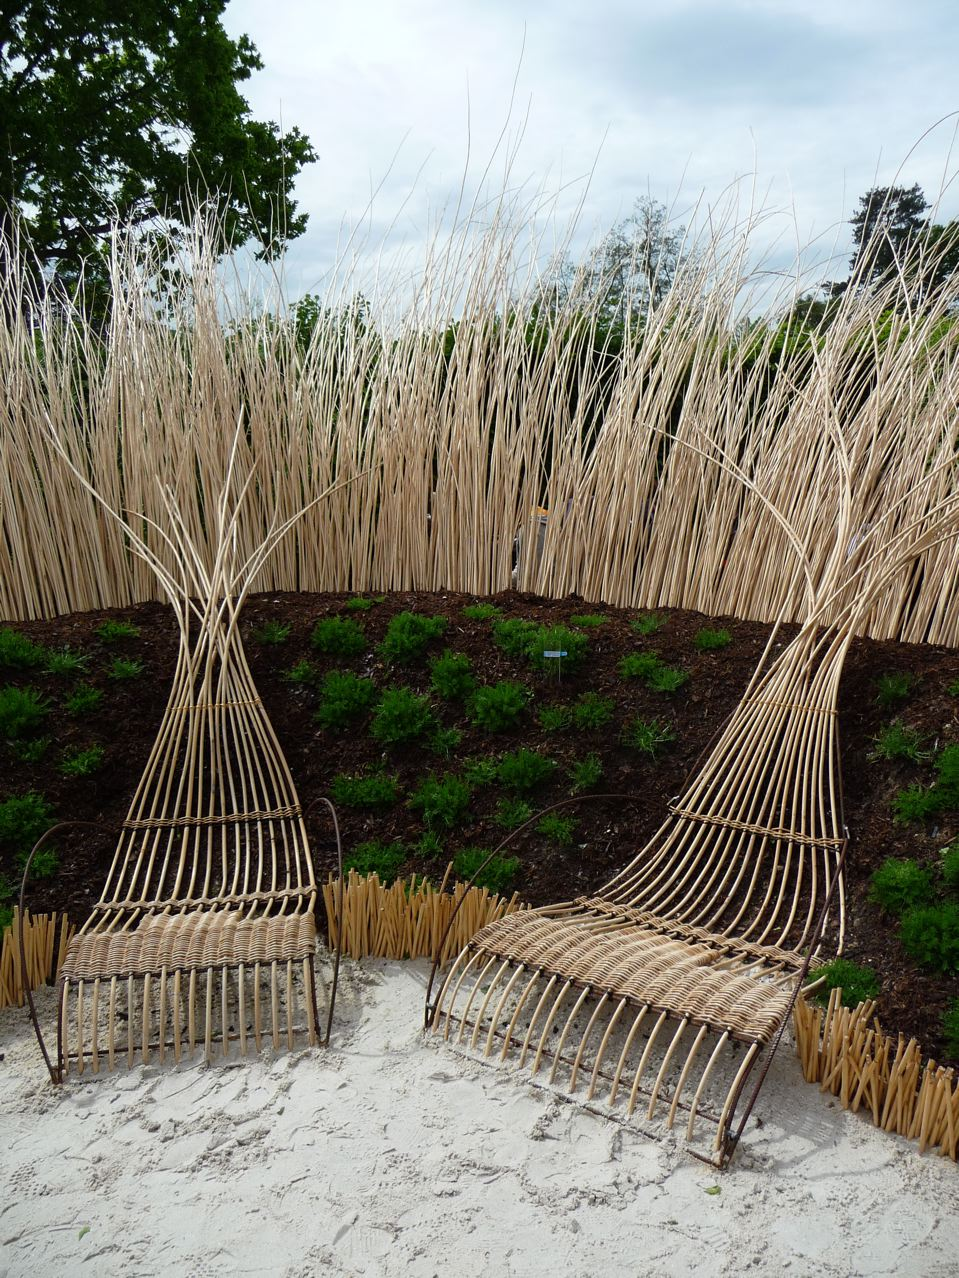 nibelle et baudouin festival des jardins de chaumont sur loire 2010. Black Bedroom Furniture Sets. Home Design Ideas